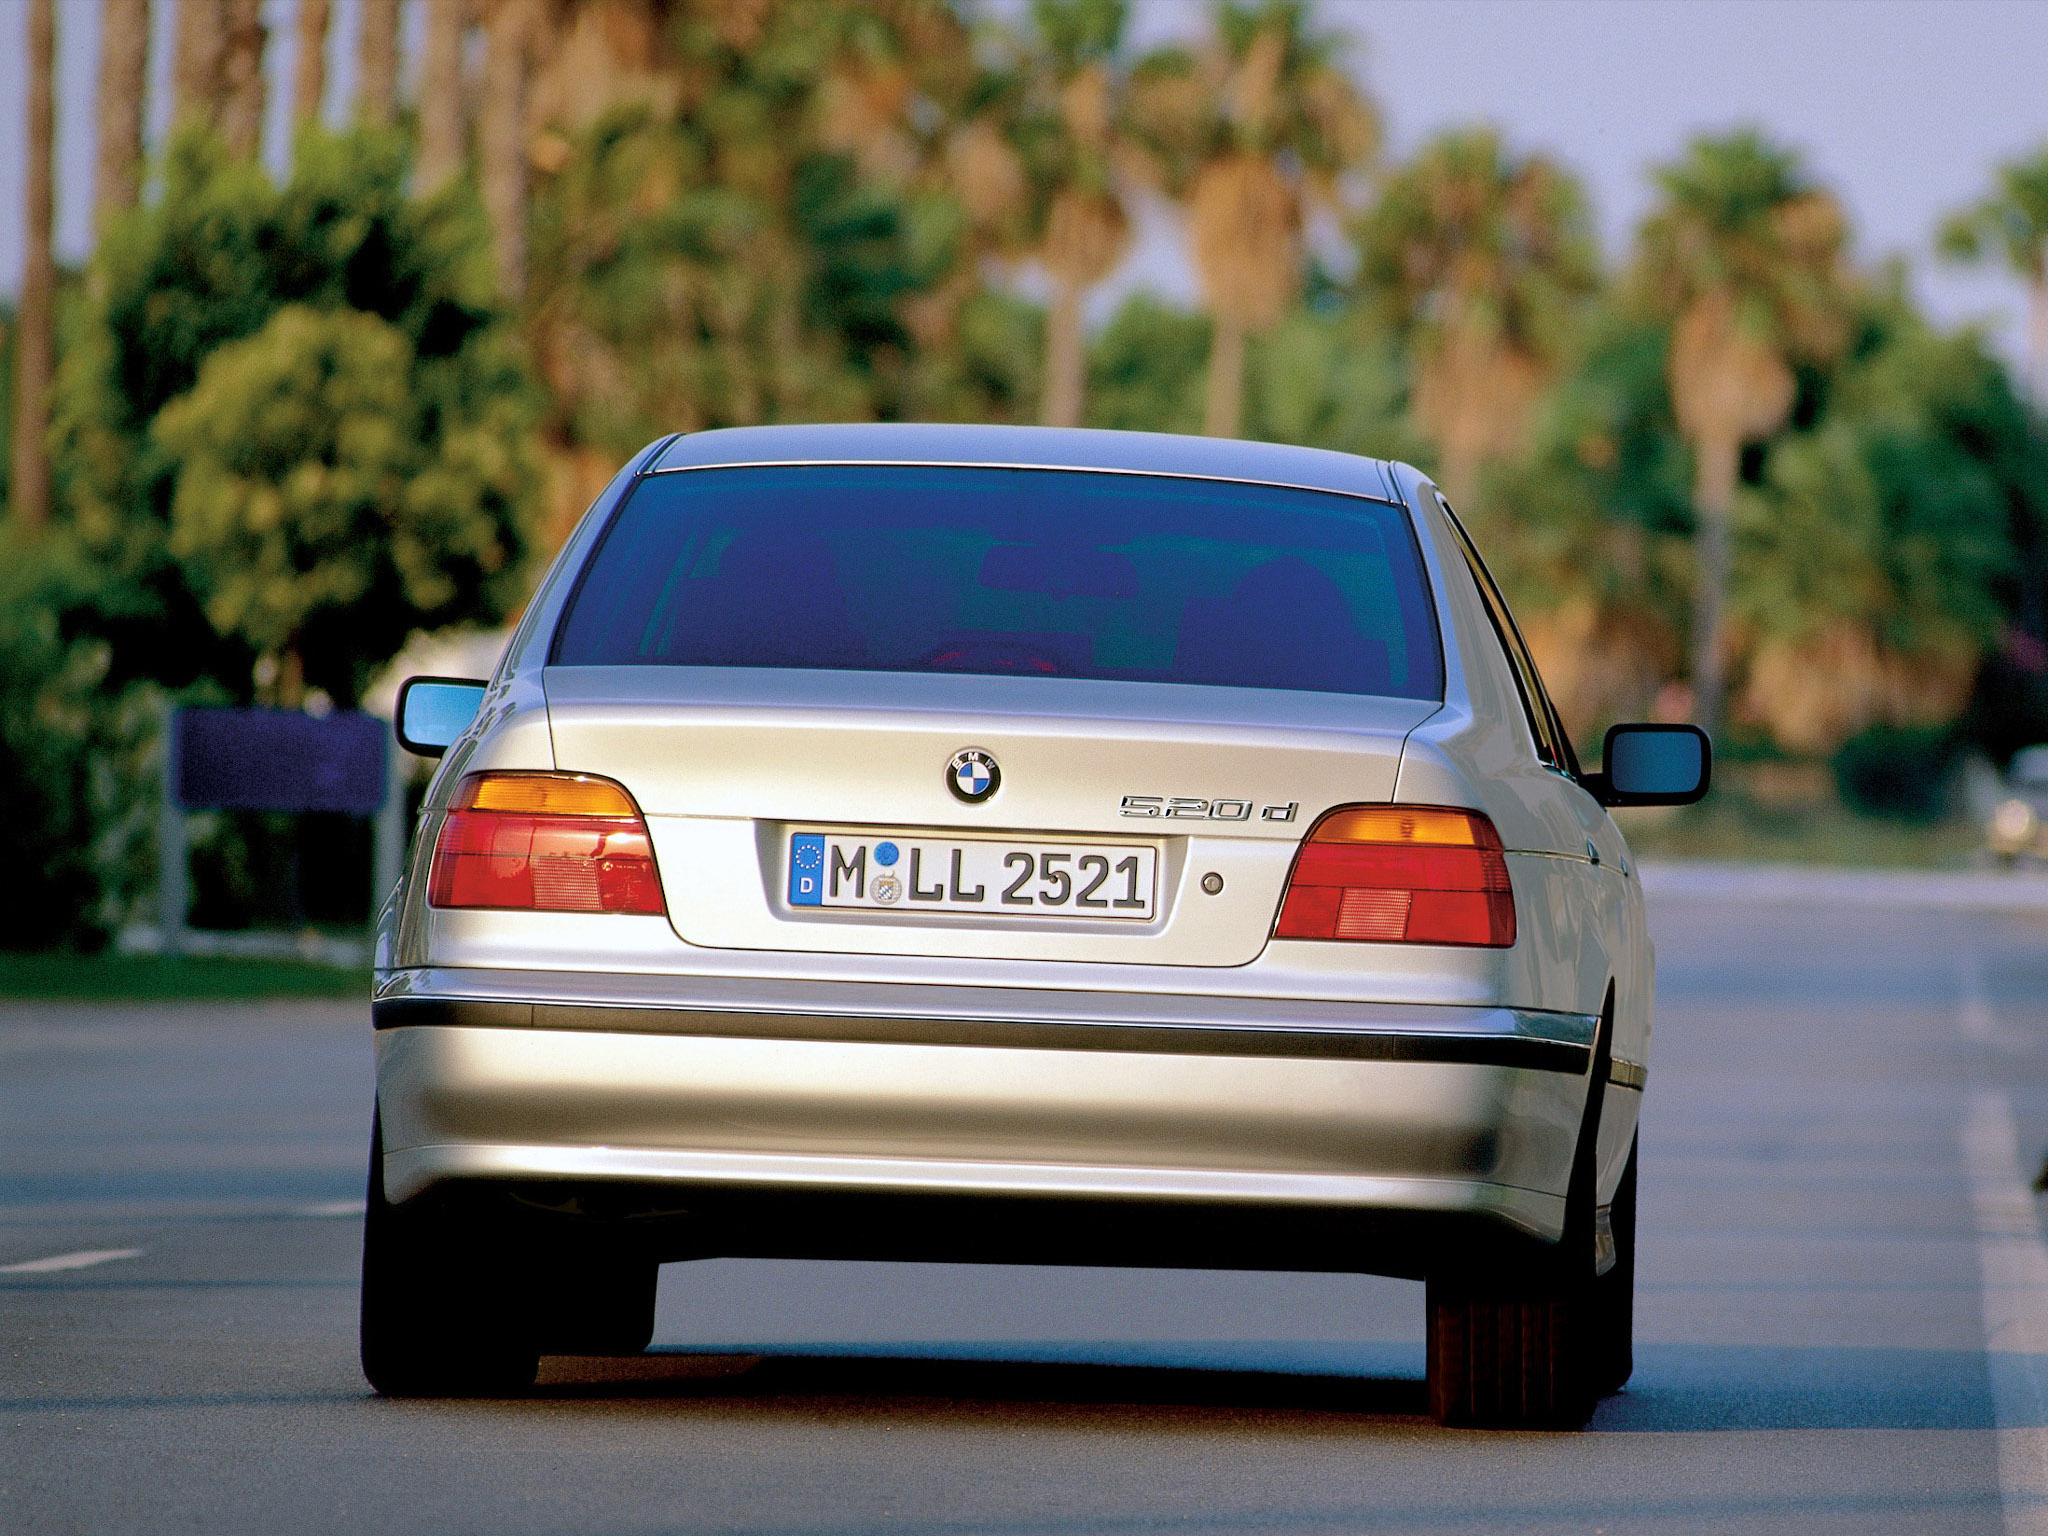 BMW 5 series 520d 2000 photo - 6